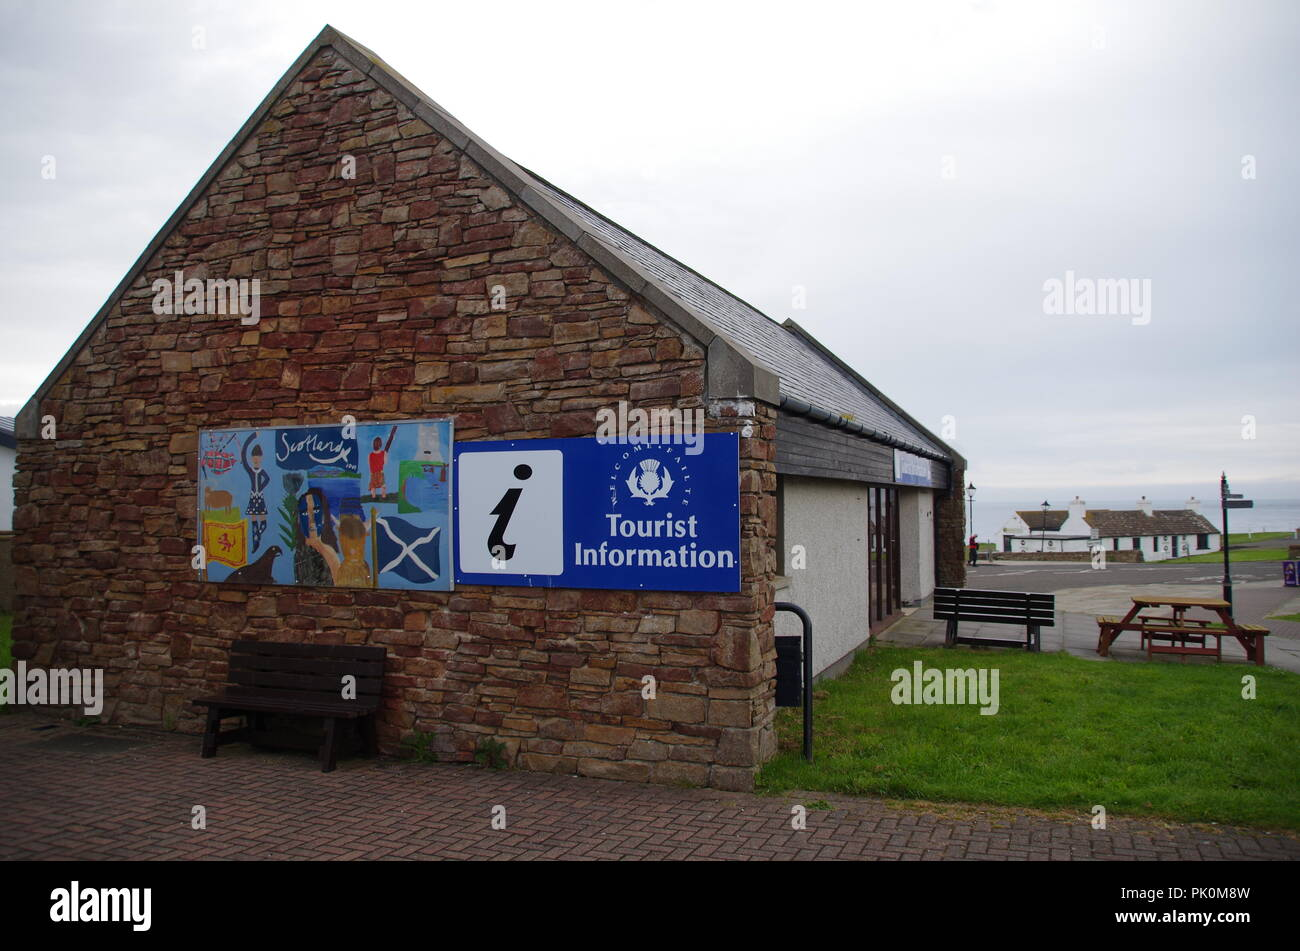 The start of a long hike. John o' groats (Duncansby head) to lands end. Cornwall. End to end trail. Caithness. Highlands. Scotland. UK - Stock Image